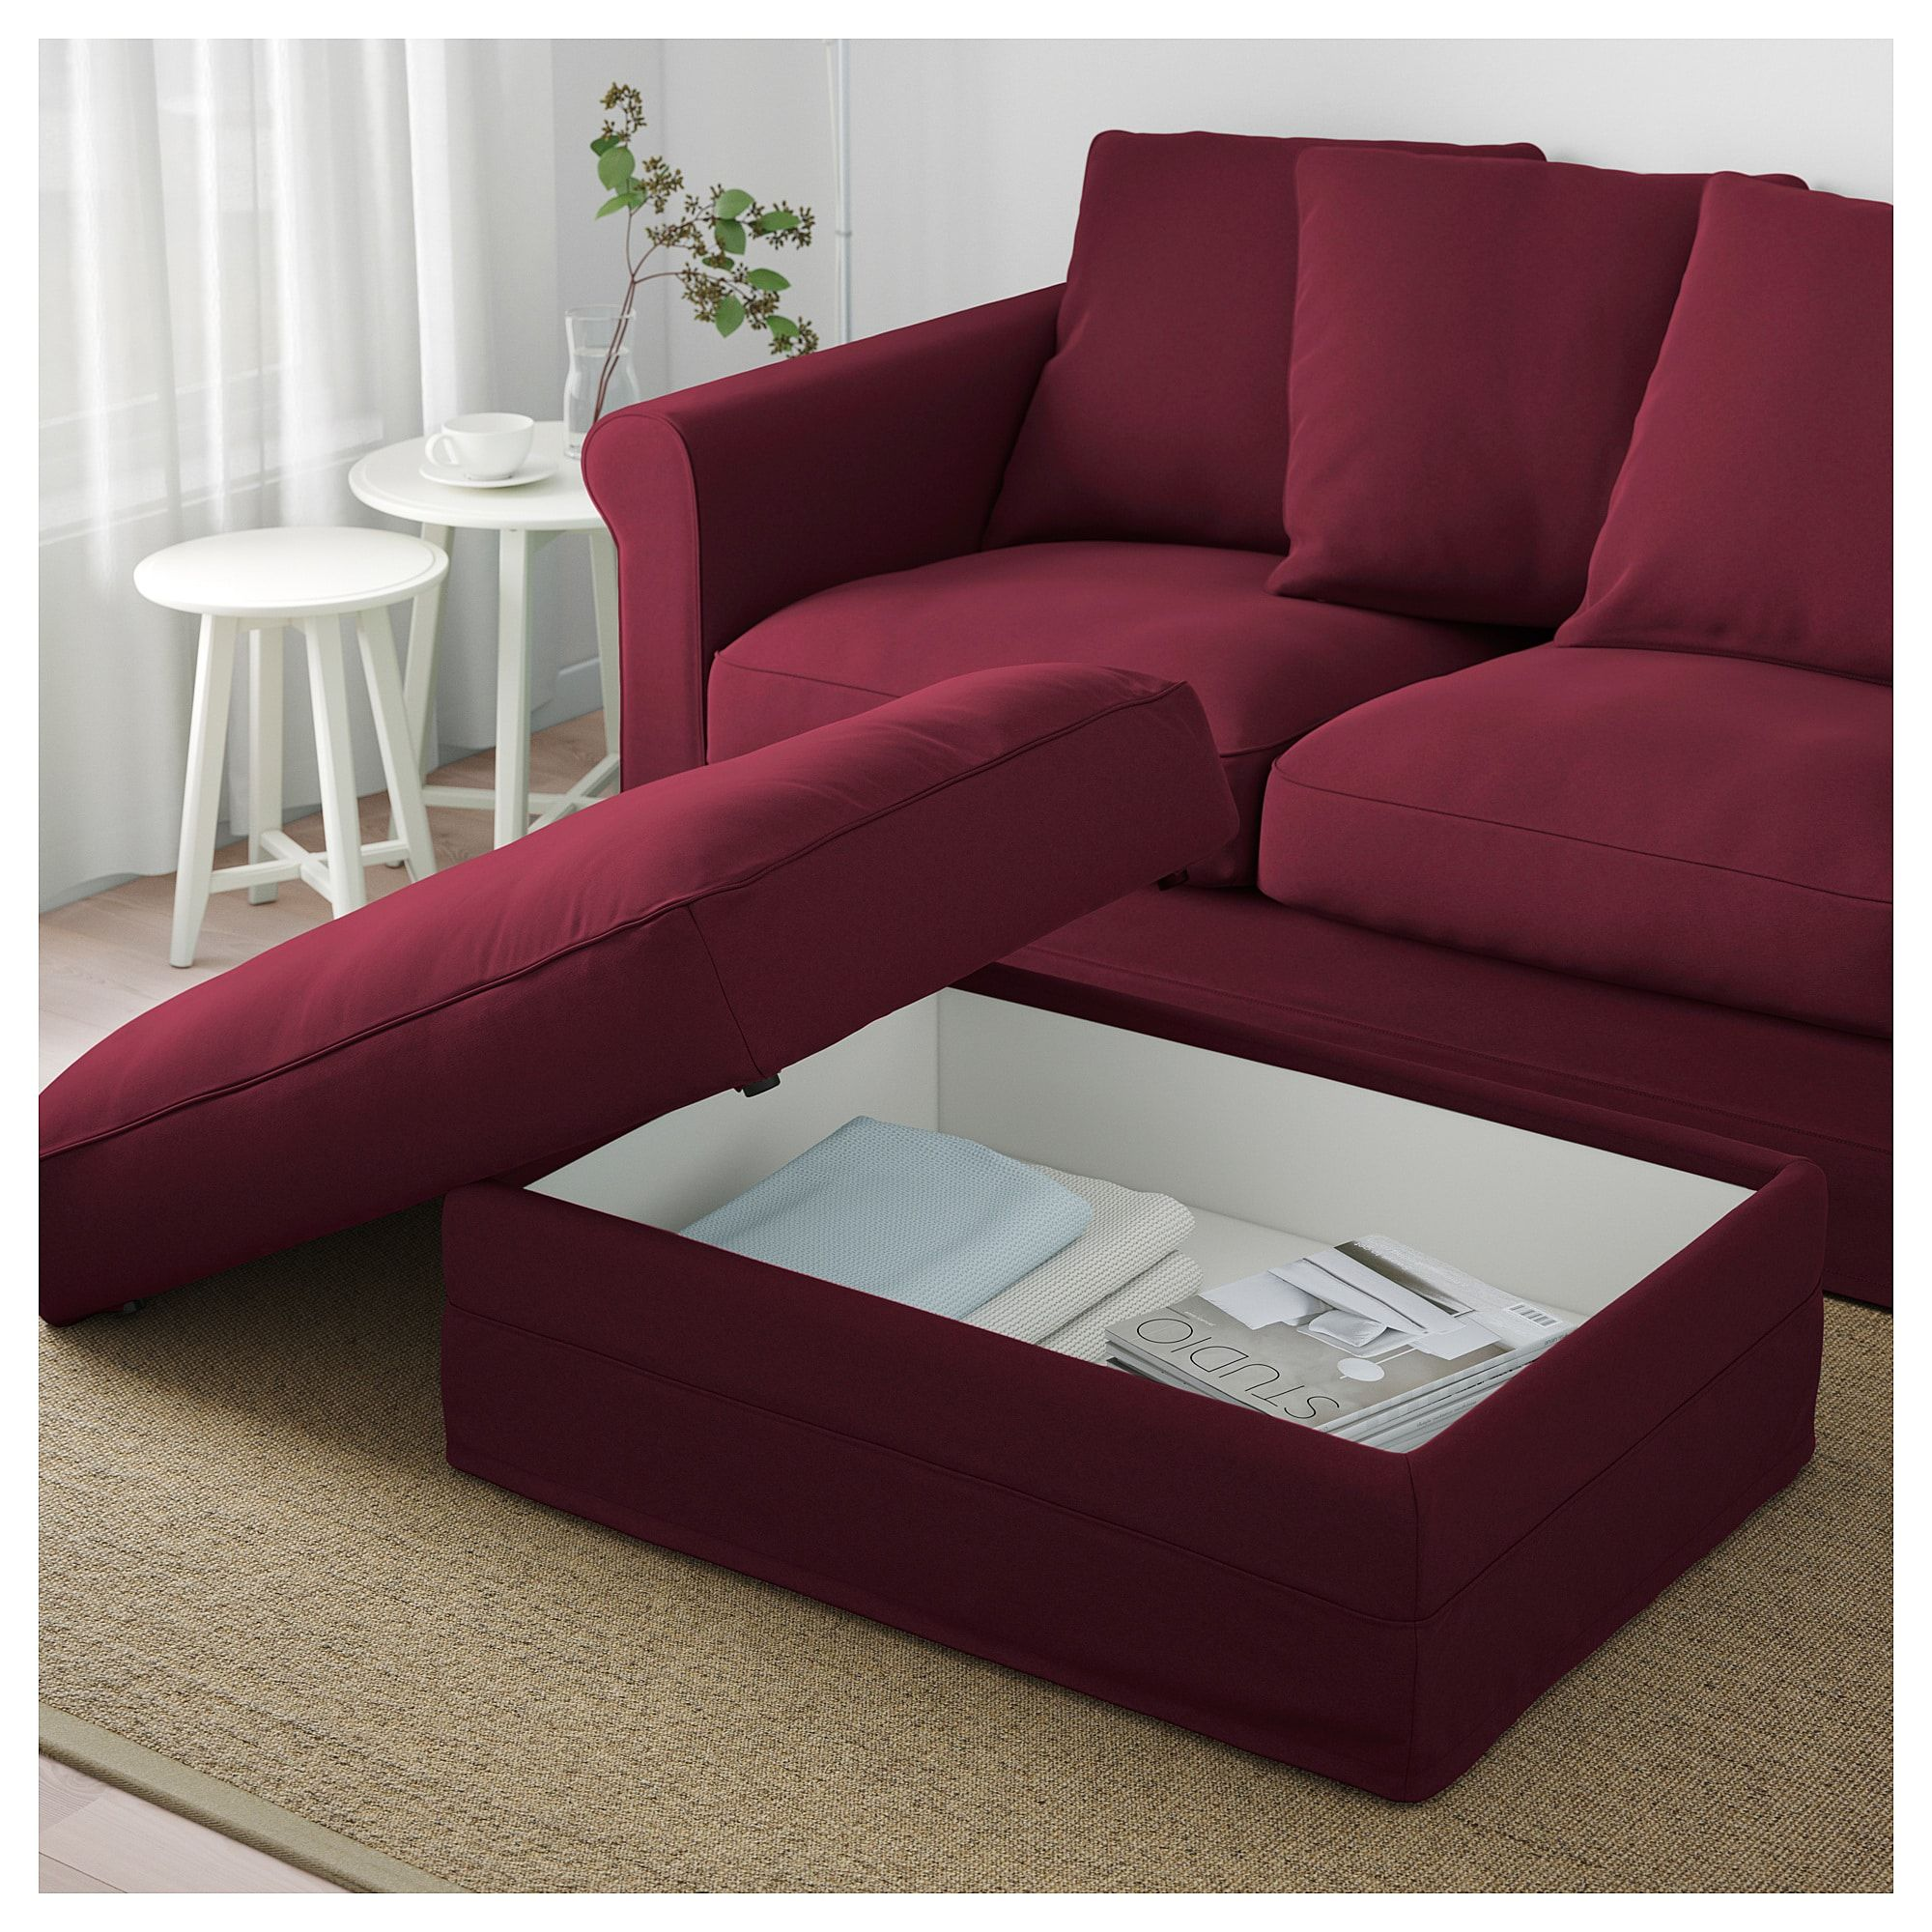 Awe Inspiring Ikea Gronlid Ljungen Dark Red Ottoman With Storage In 2019 Caraccident5 Cool Chair Designs And Ideas Caraccident5Info